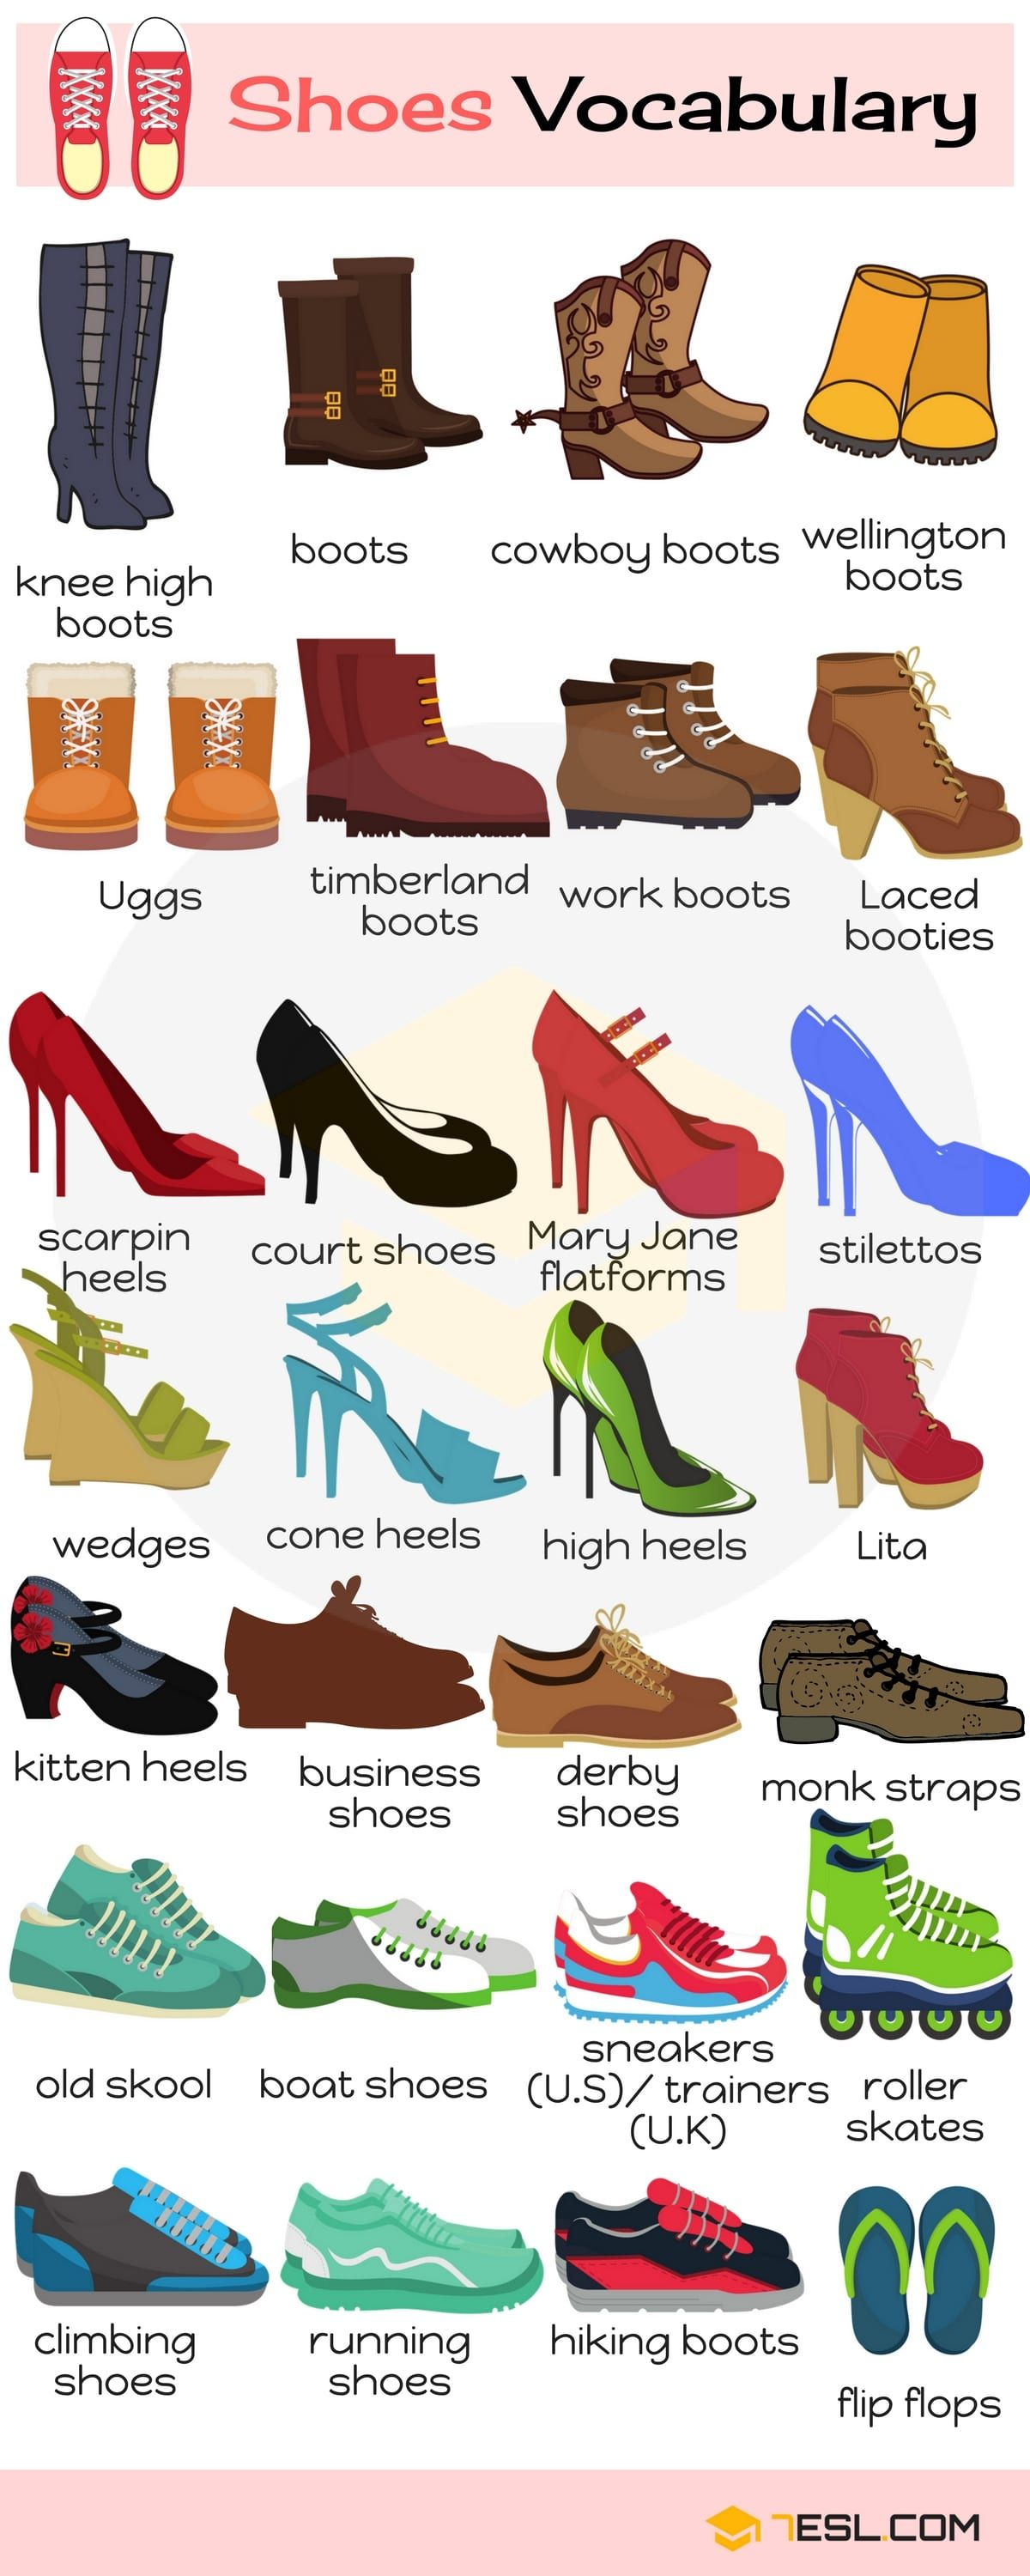 Shoe With PicturesEnglish Vocabulary Words NamesShoes qUVSMGLzp